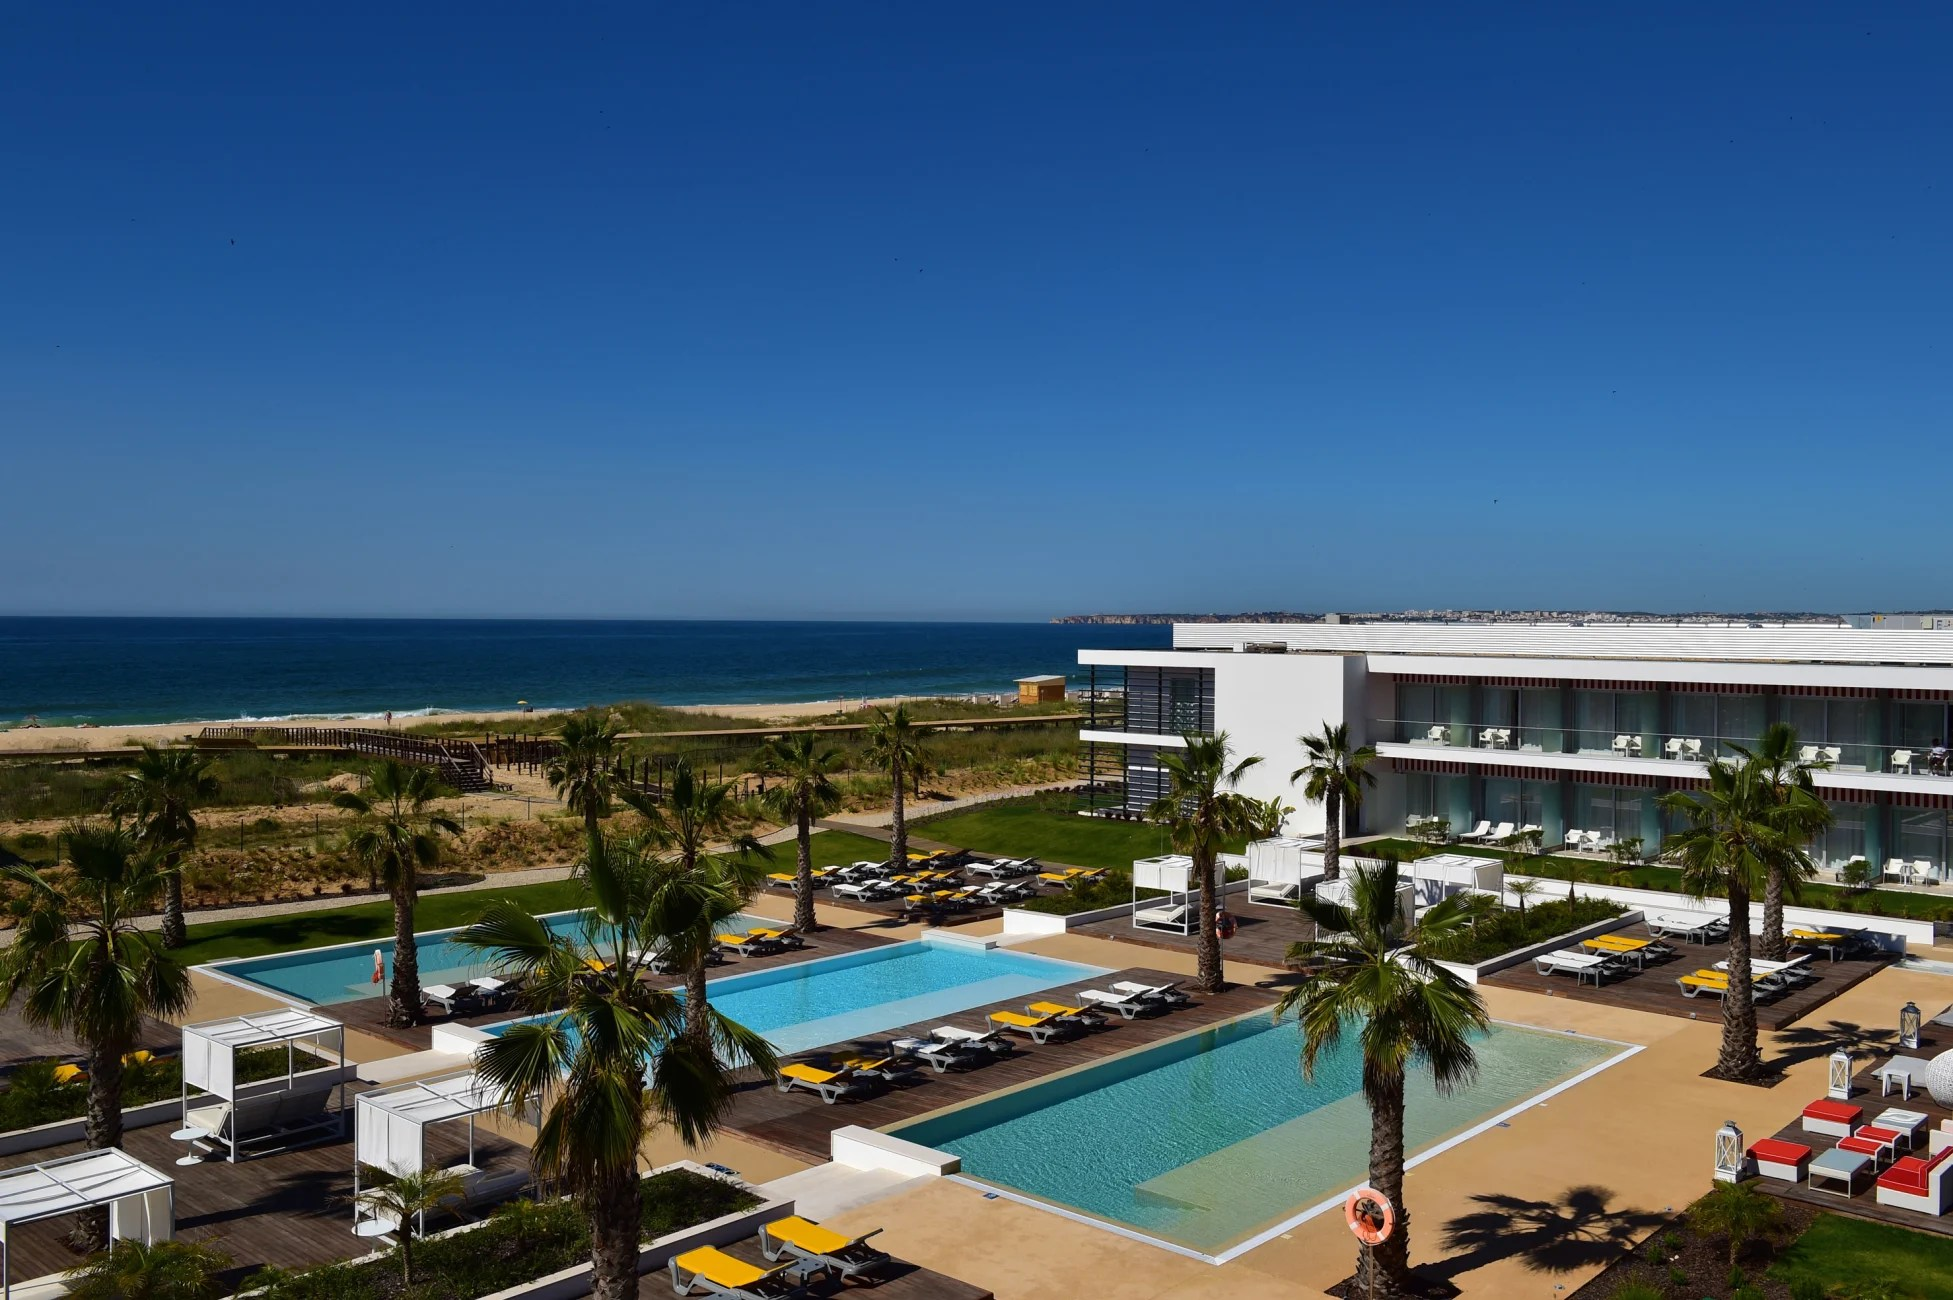 Hotel Tivoli Lagos Parking Hotel Pestana Alvor South Beach Alvor Trivago